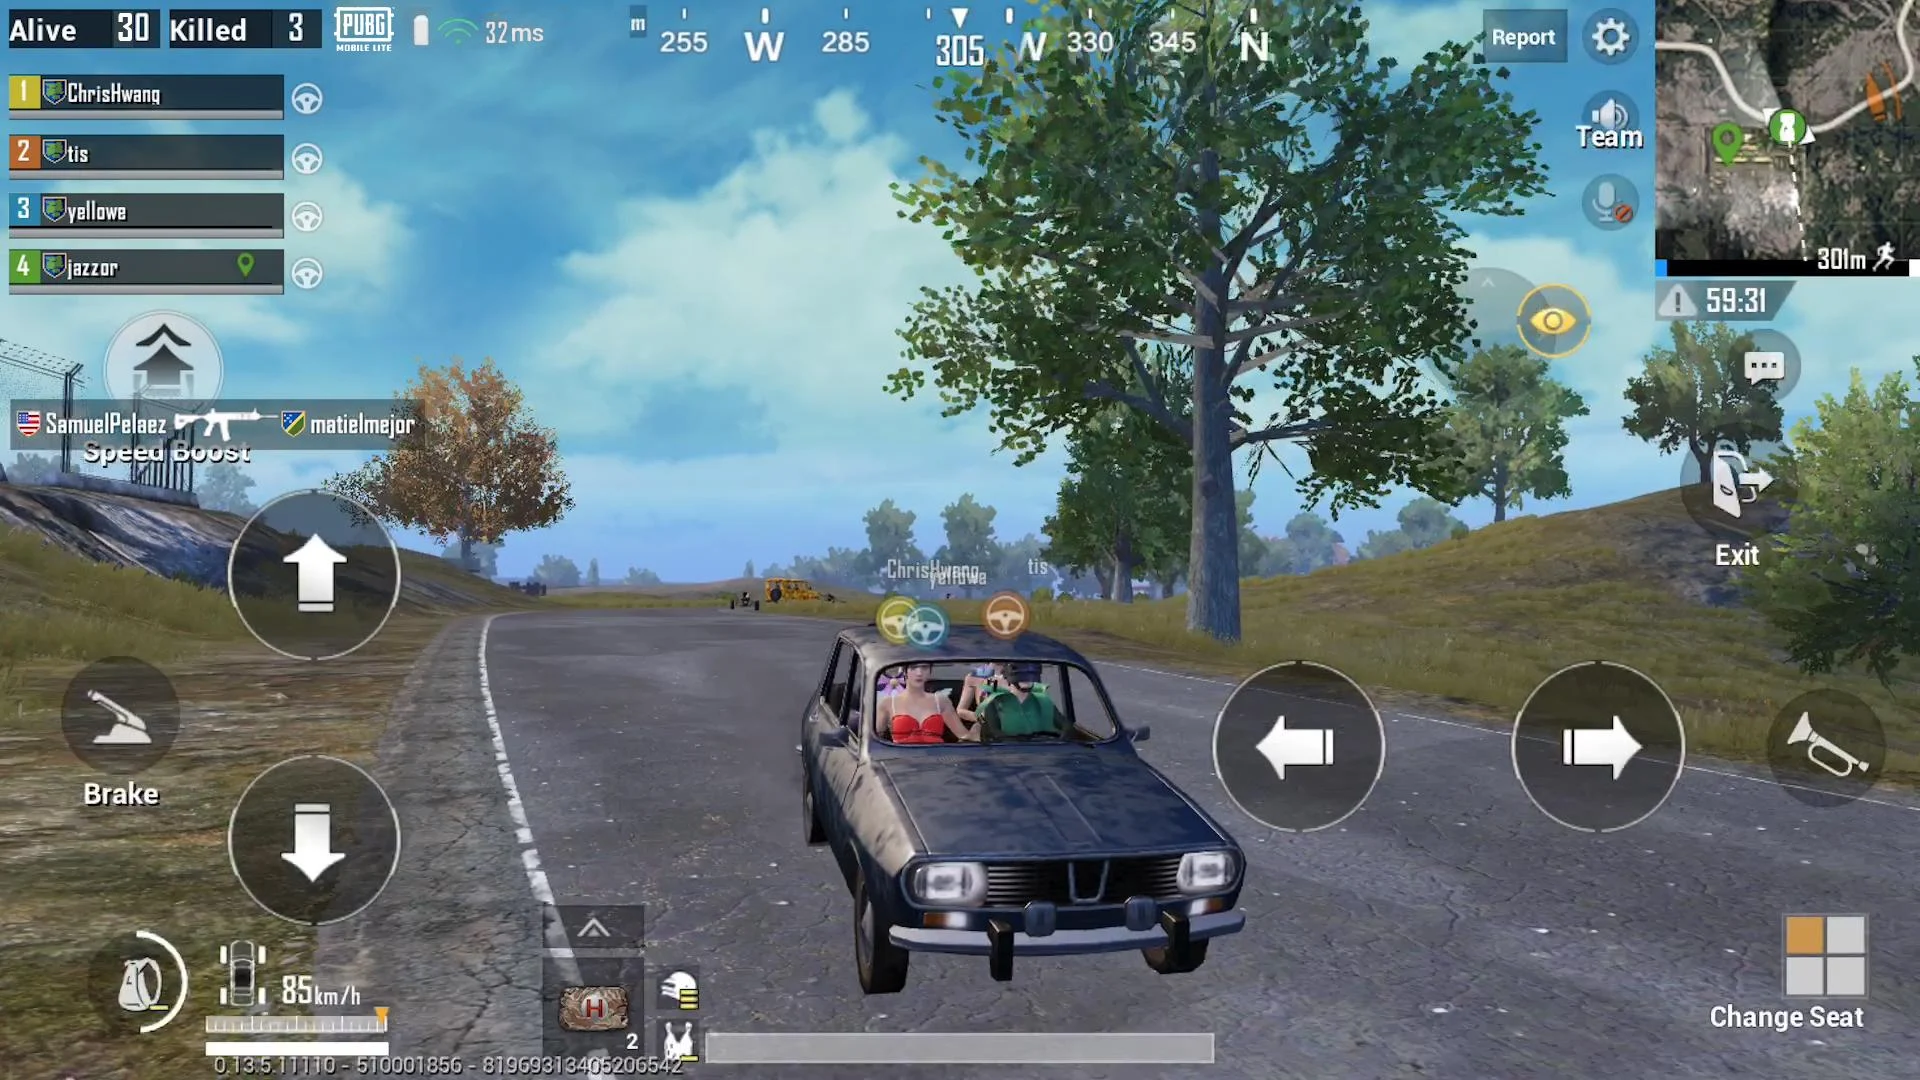 Tencent Just Launched Pubg Mobile Lite In India For Lower End